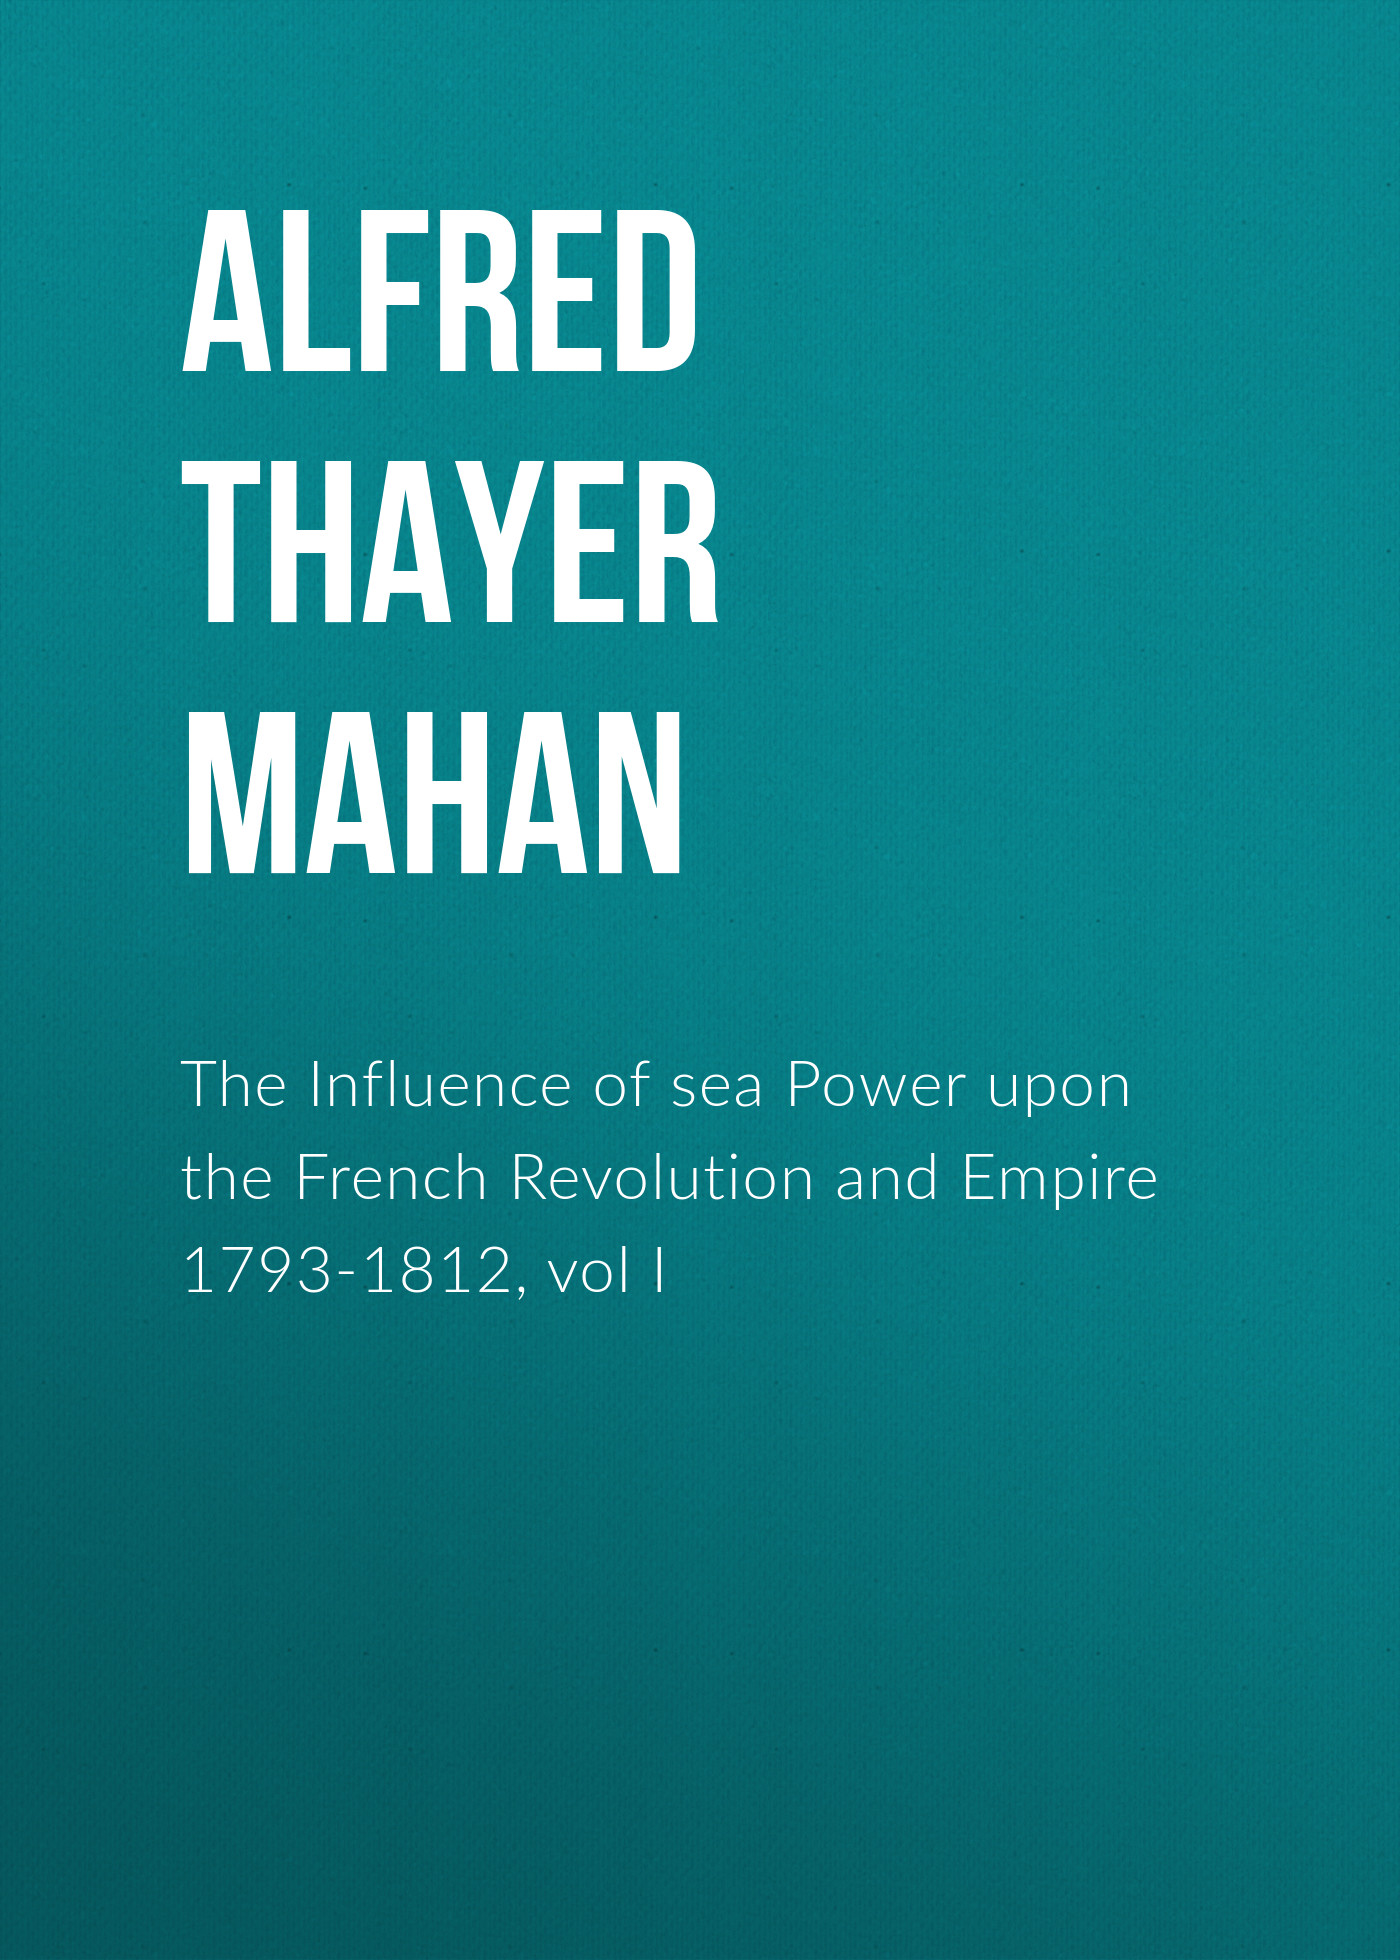 Alfred Thayer Mahan The Influence of sea Power upon the French Revolution and Empire 1793-1812, vol I alfred thayer mahan from sail to steam recollections of naval life